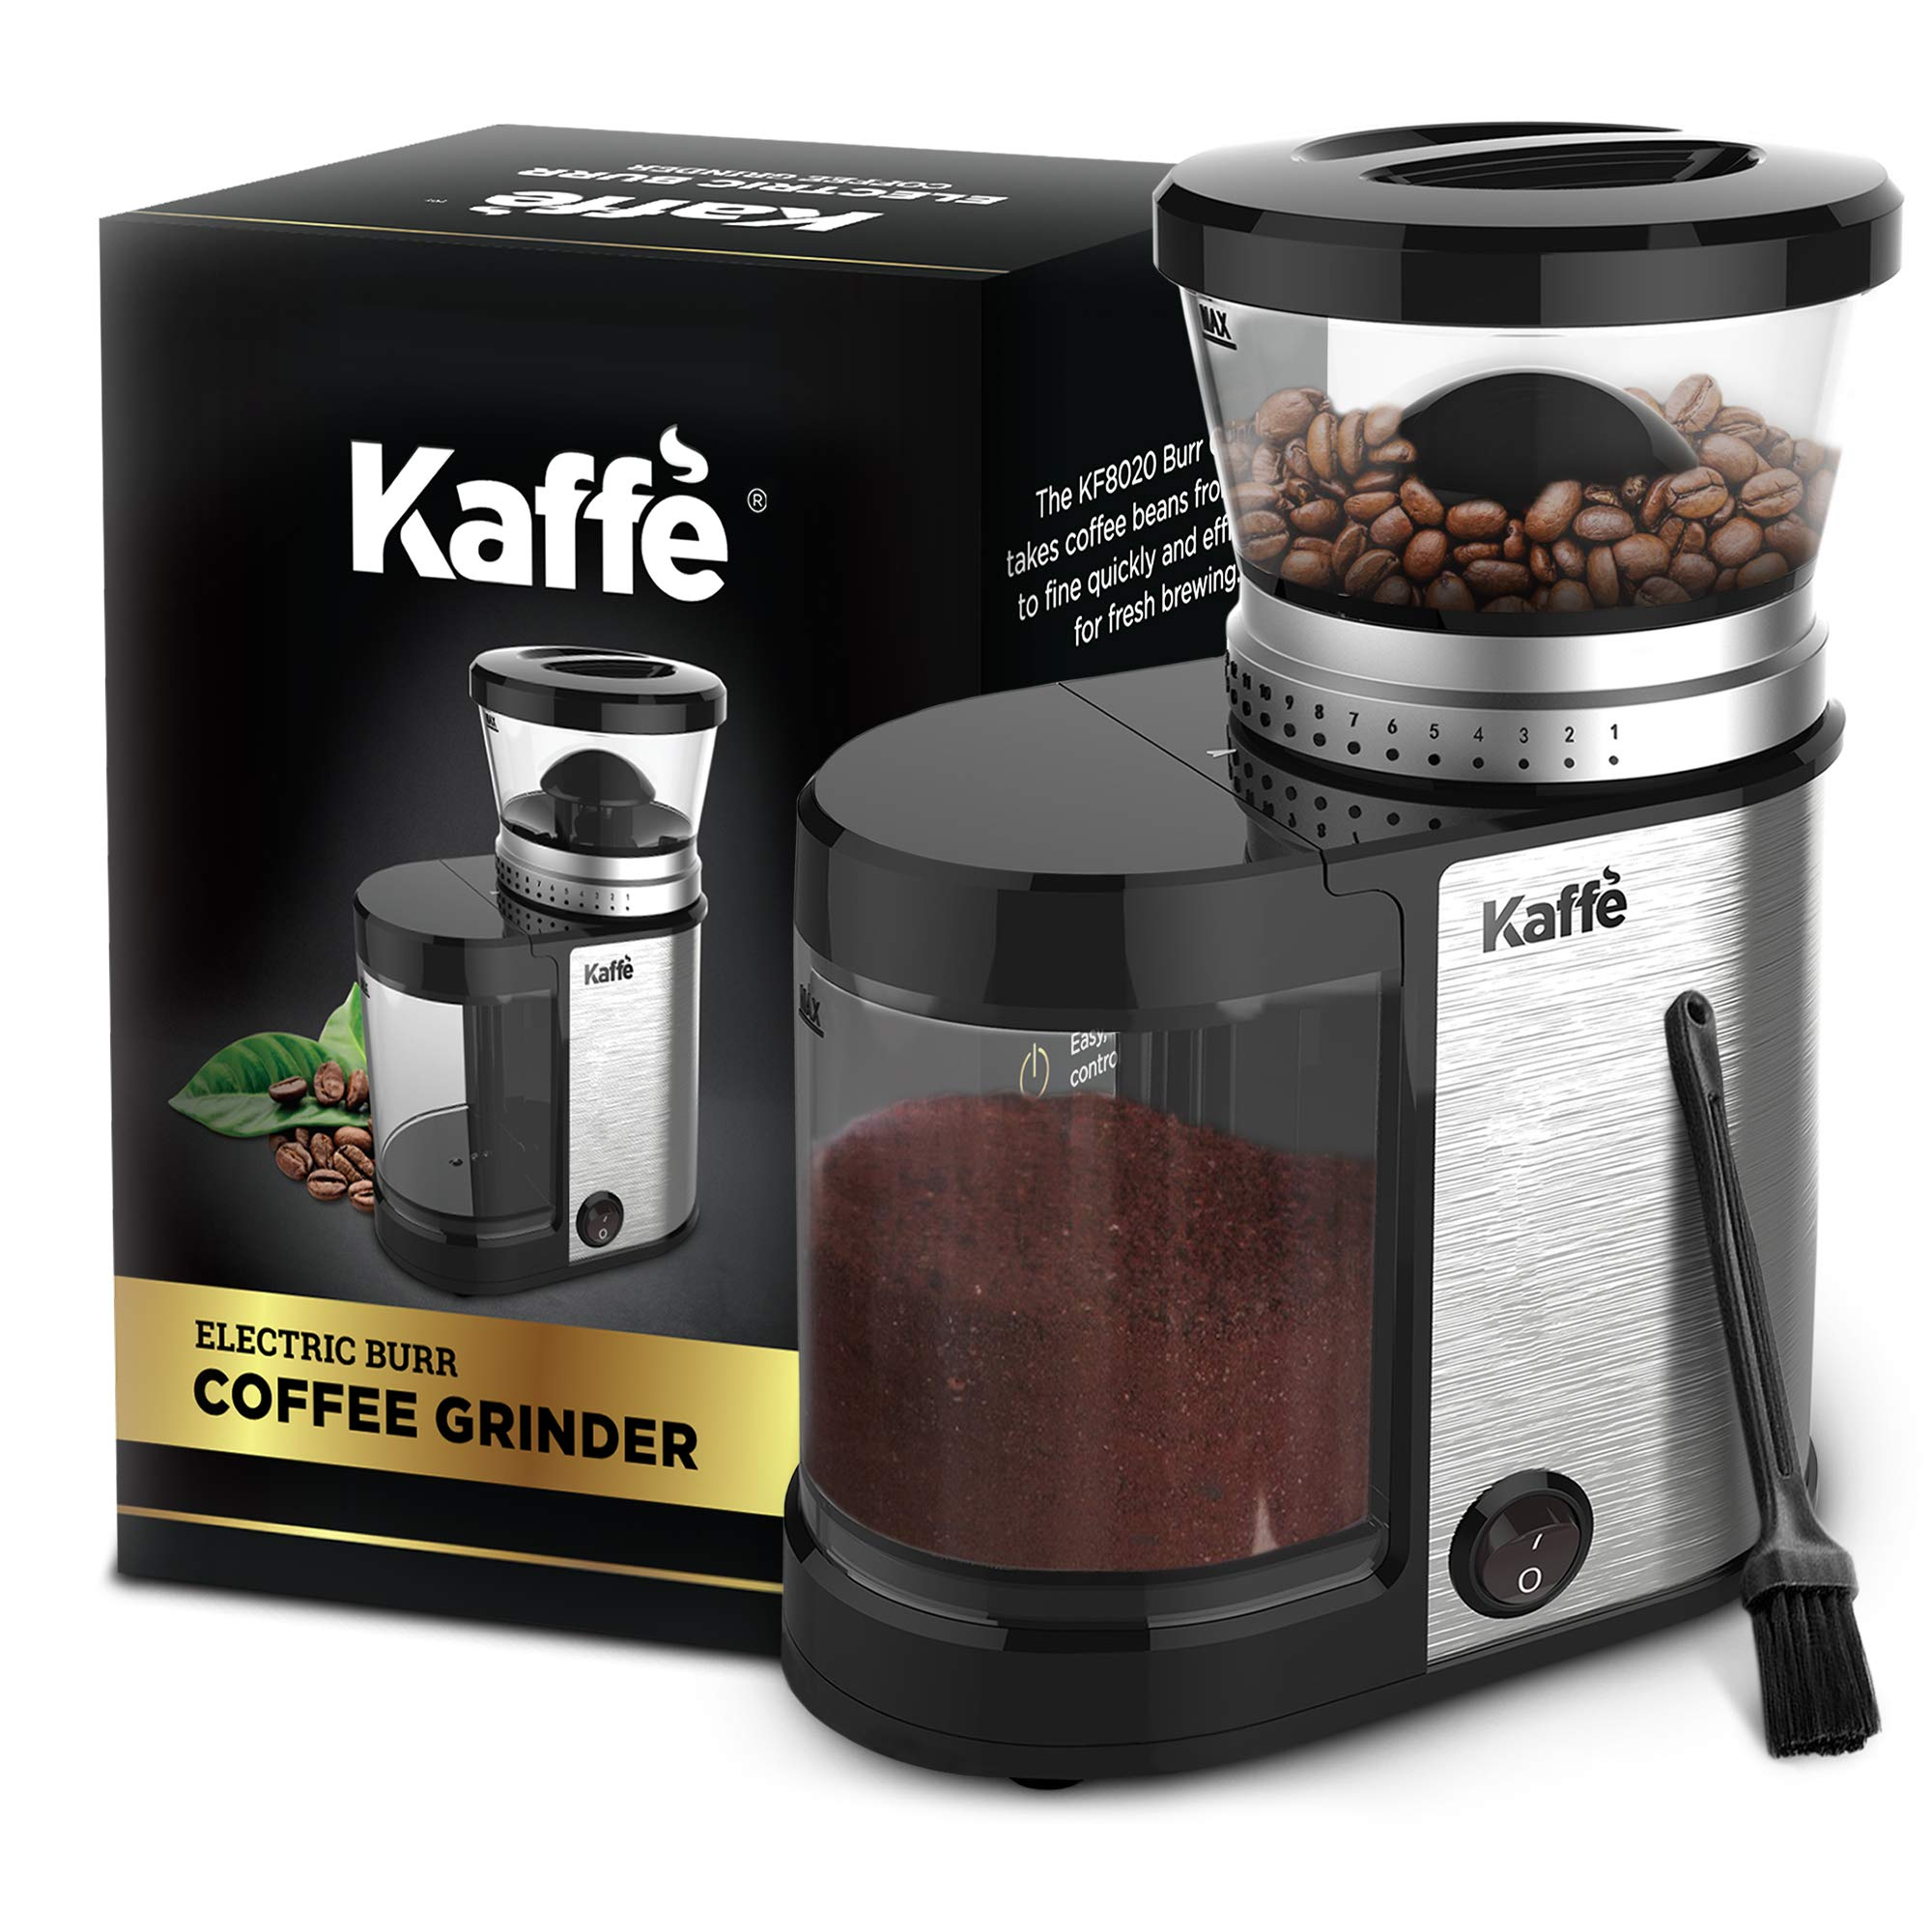 Kaffe KF8020 Electric Burr Coffee Grinder. Stainless Steel - 4oz Capacity with Easy On/Off Button. Cleaning Brush Included!